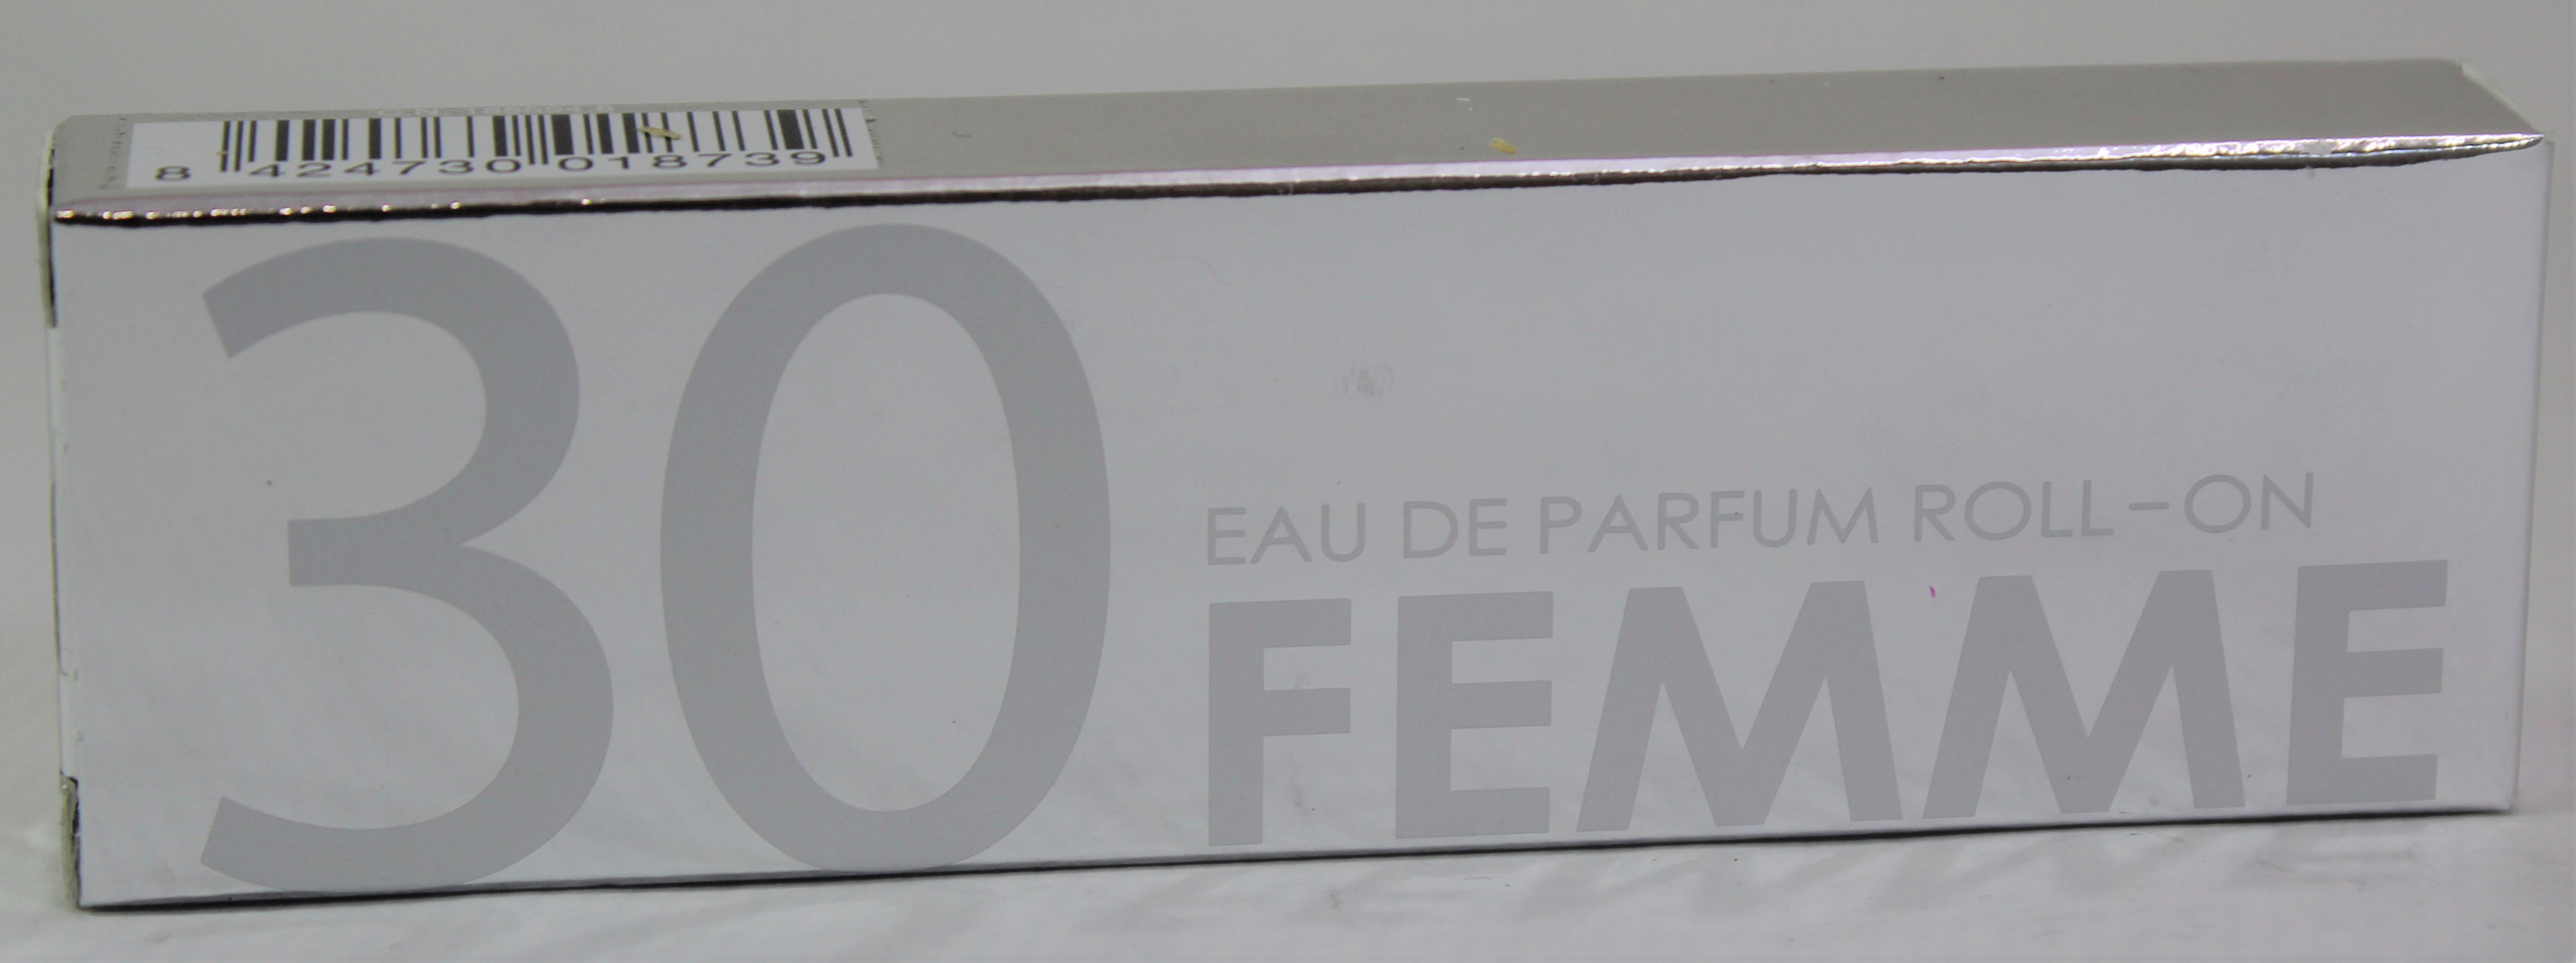 IAP PHARMA POUR FEMME N30 ROLL-ON 10 ML